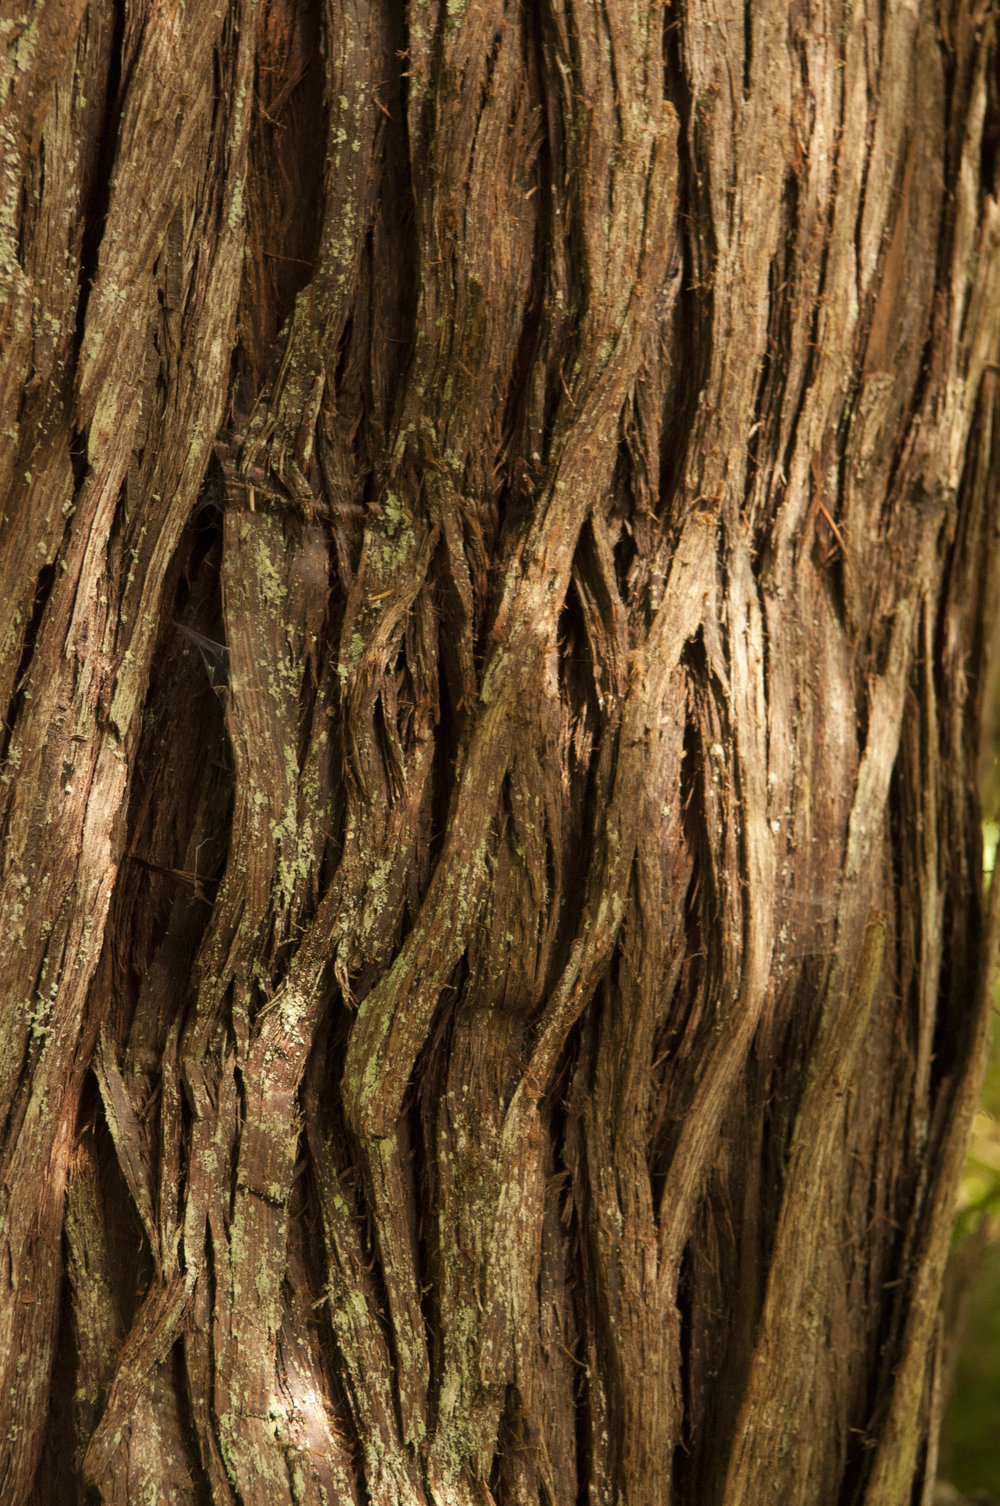 Closeup of a Western red cedar. Photo by Nikolaj Lasbo